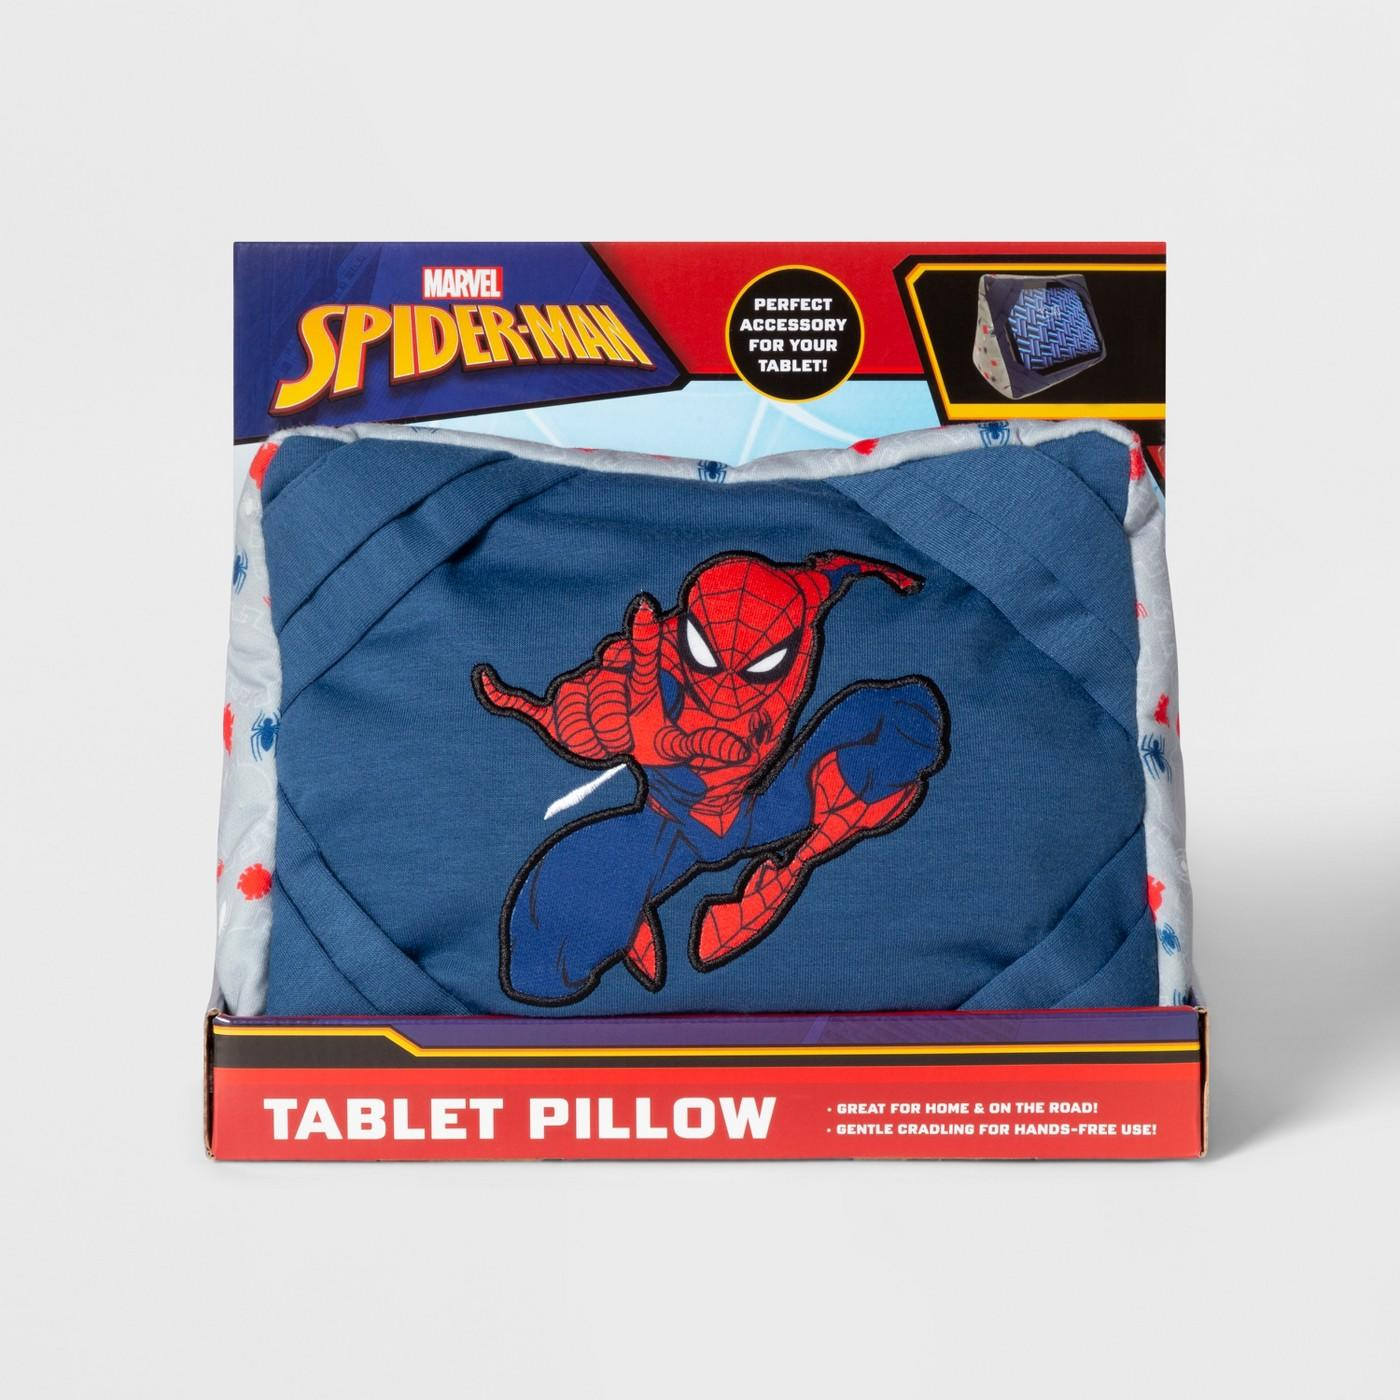 Marvel Spider-Man Tablet Throw Pillow